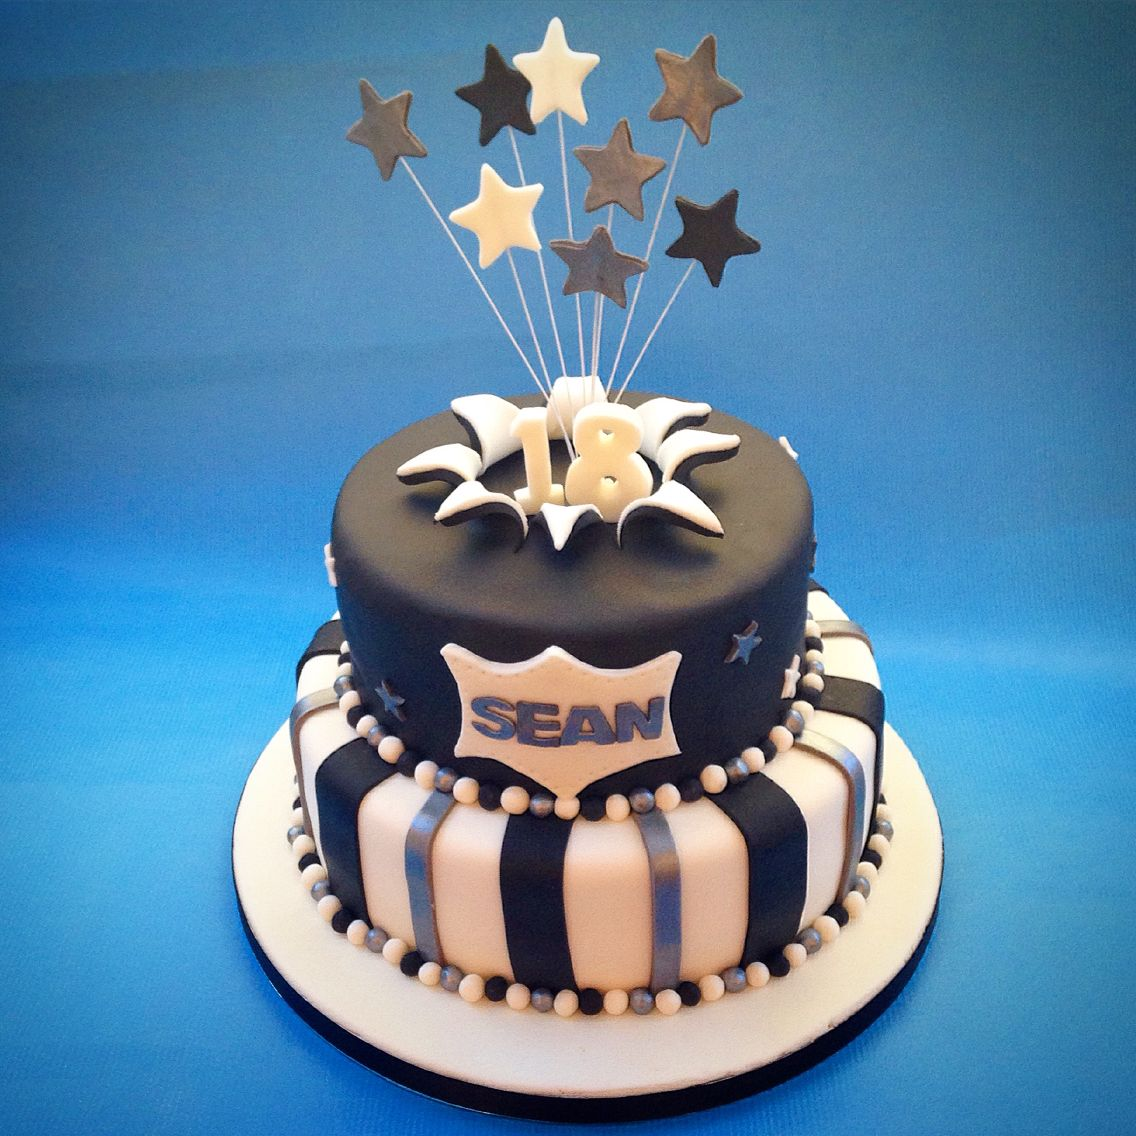 Male 18th Birthday Cake Www Caronscakery Co Uk Torta Para Fiesta